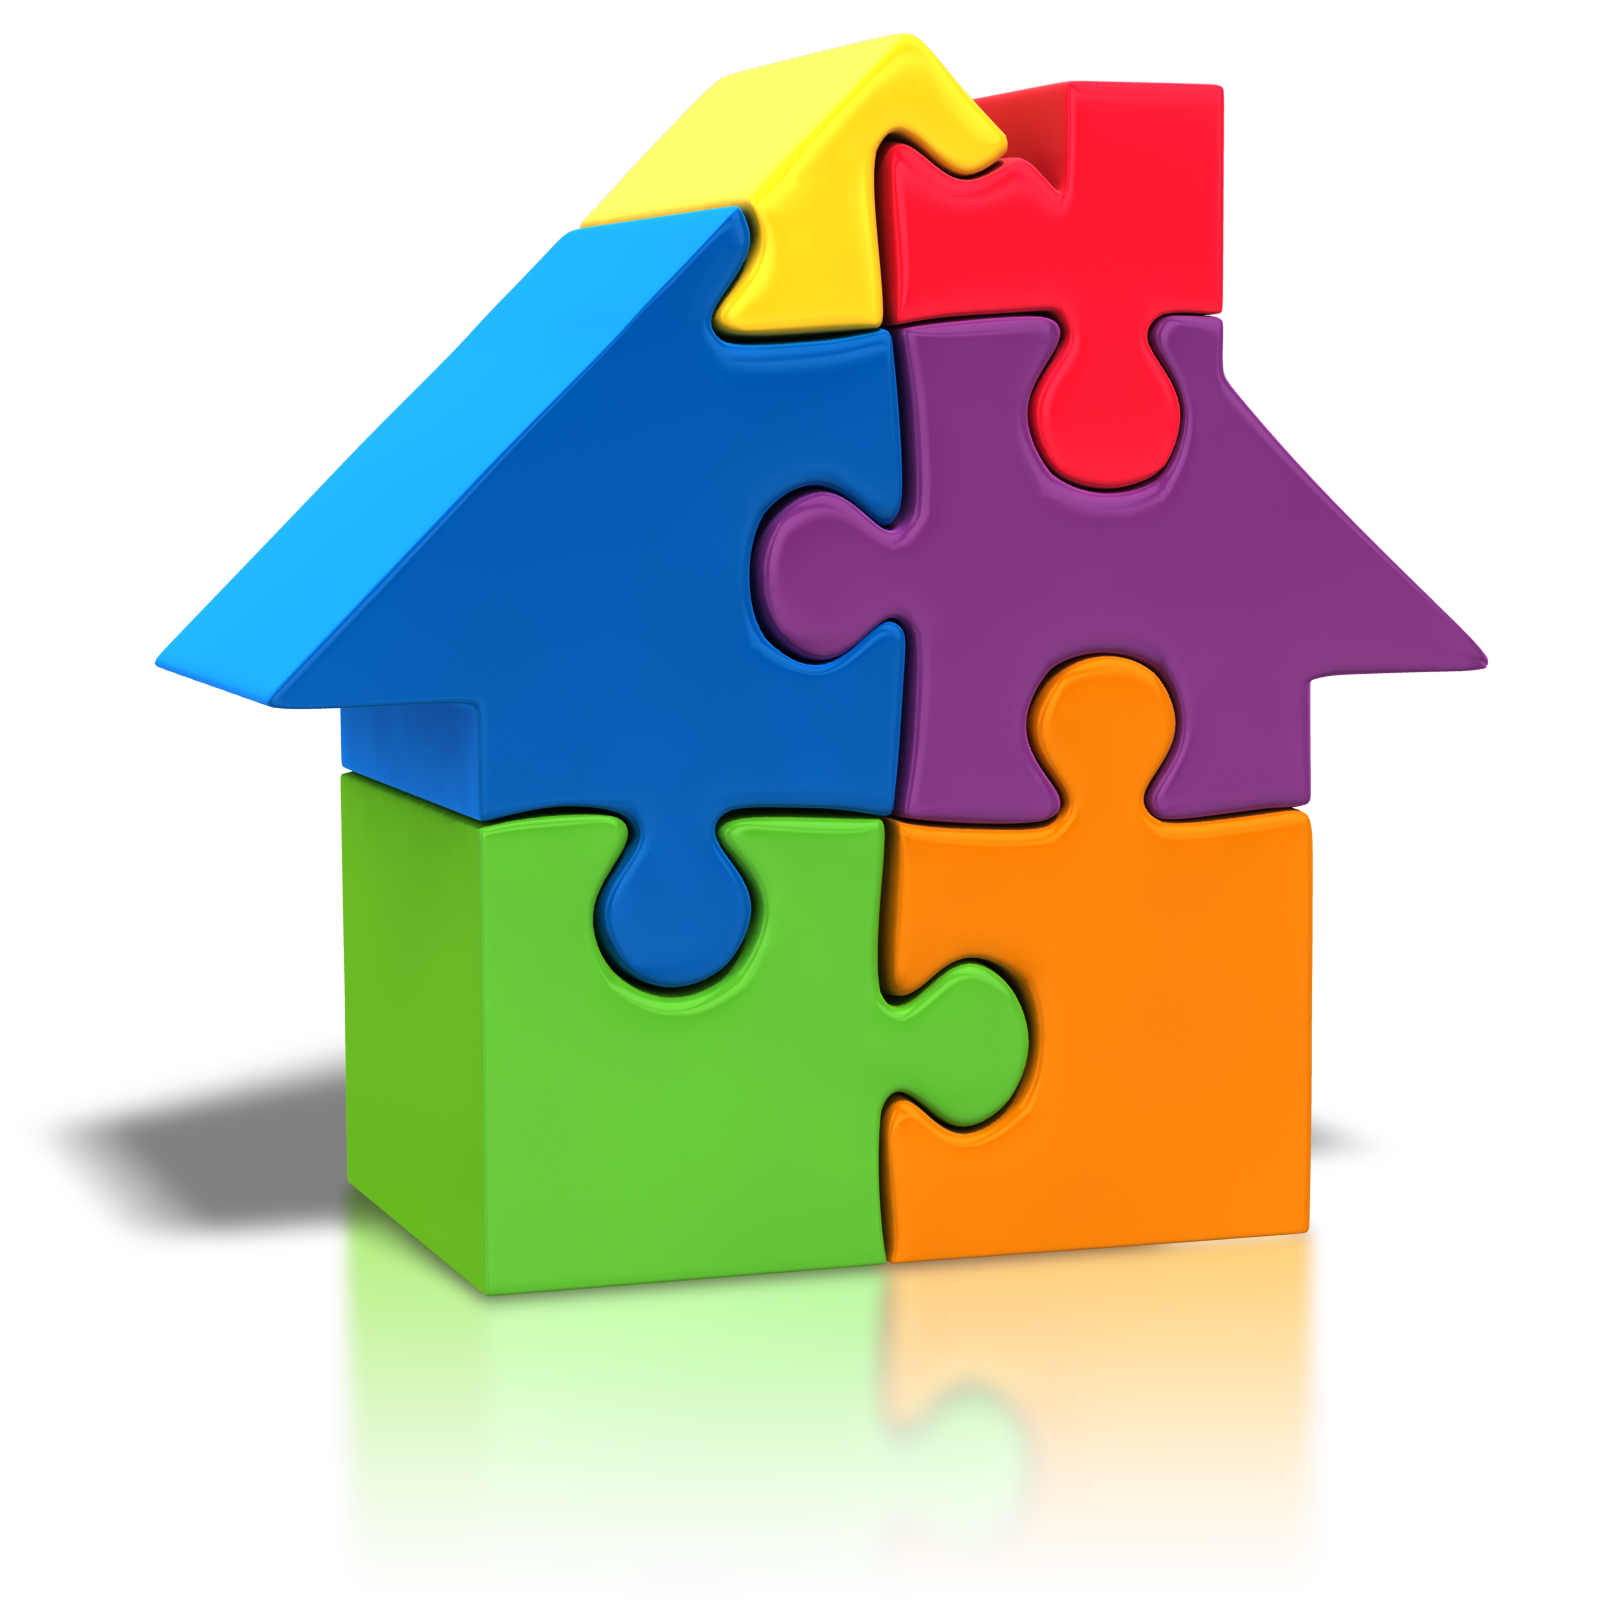 House best place to. Houses clipart puzzle